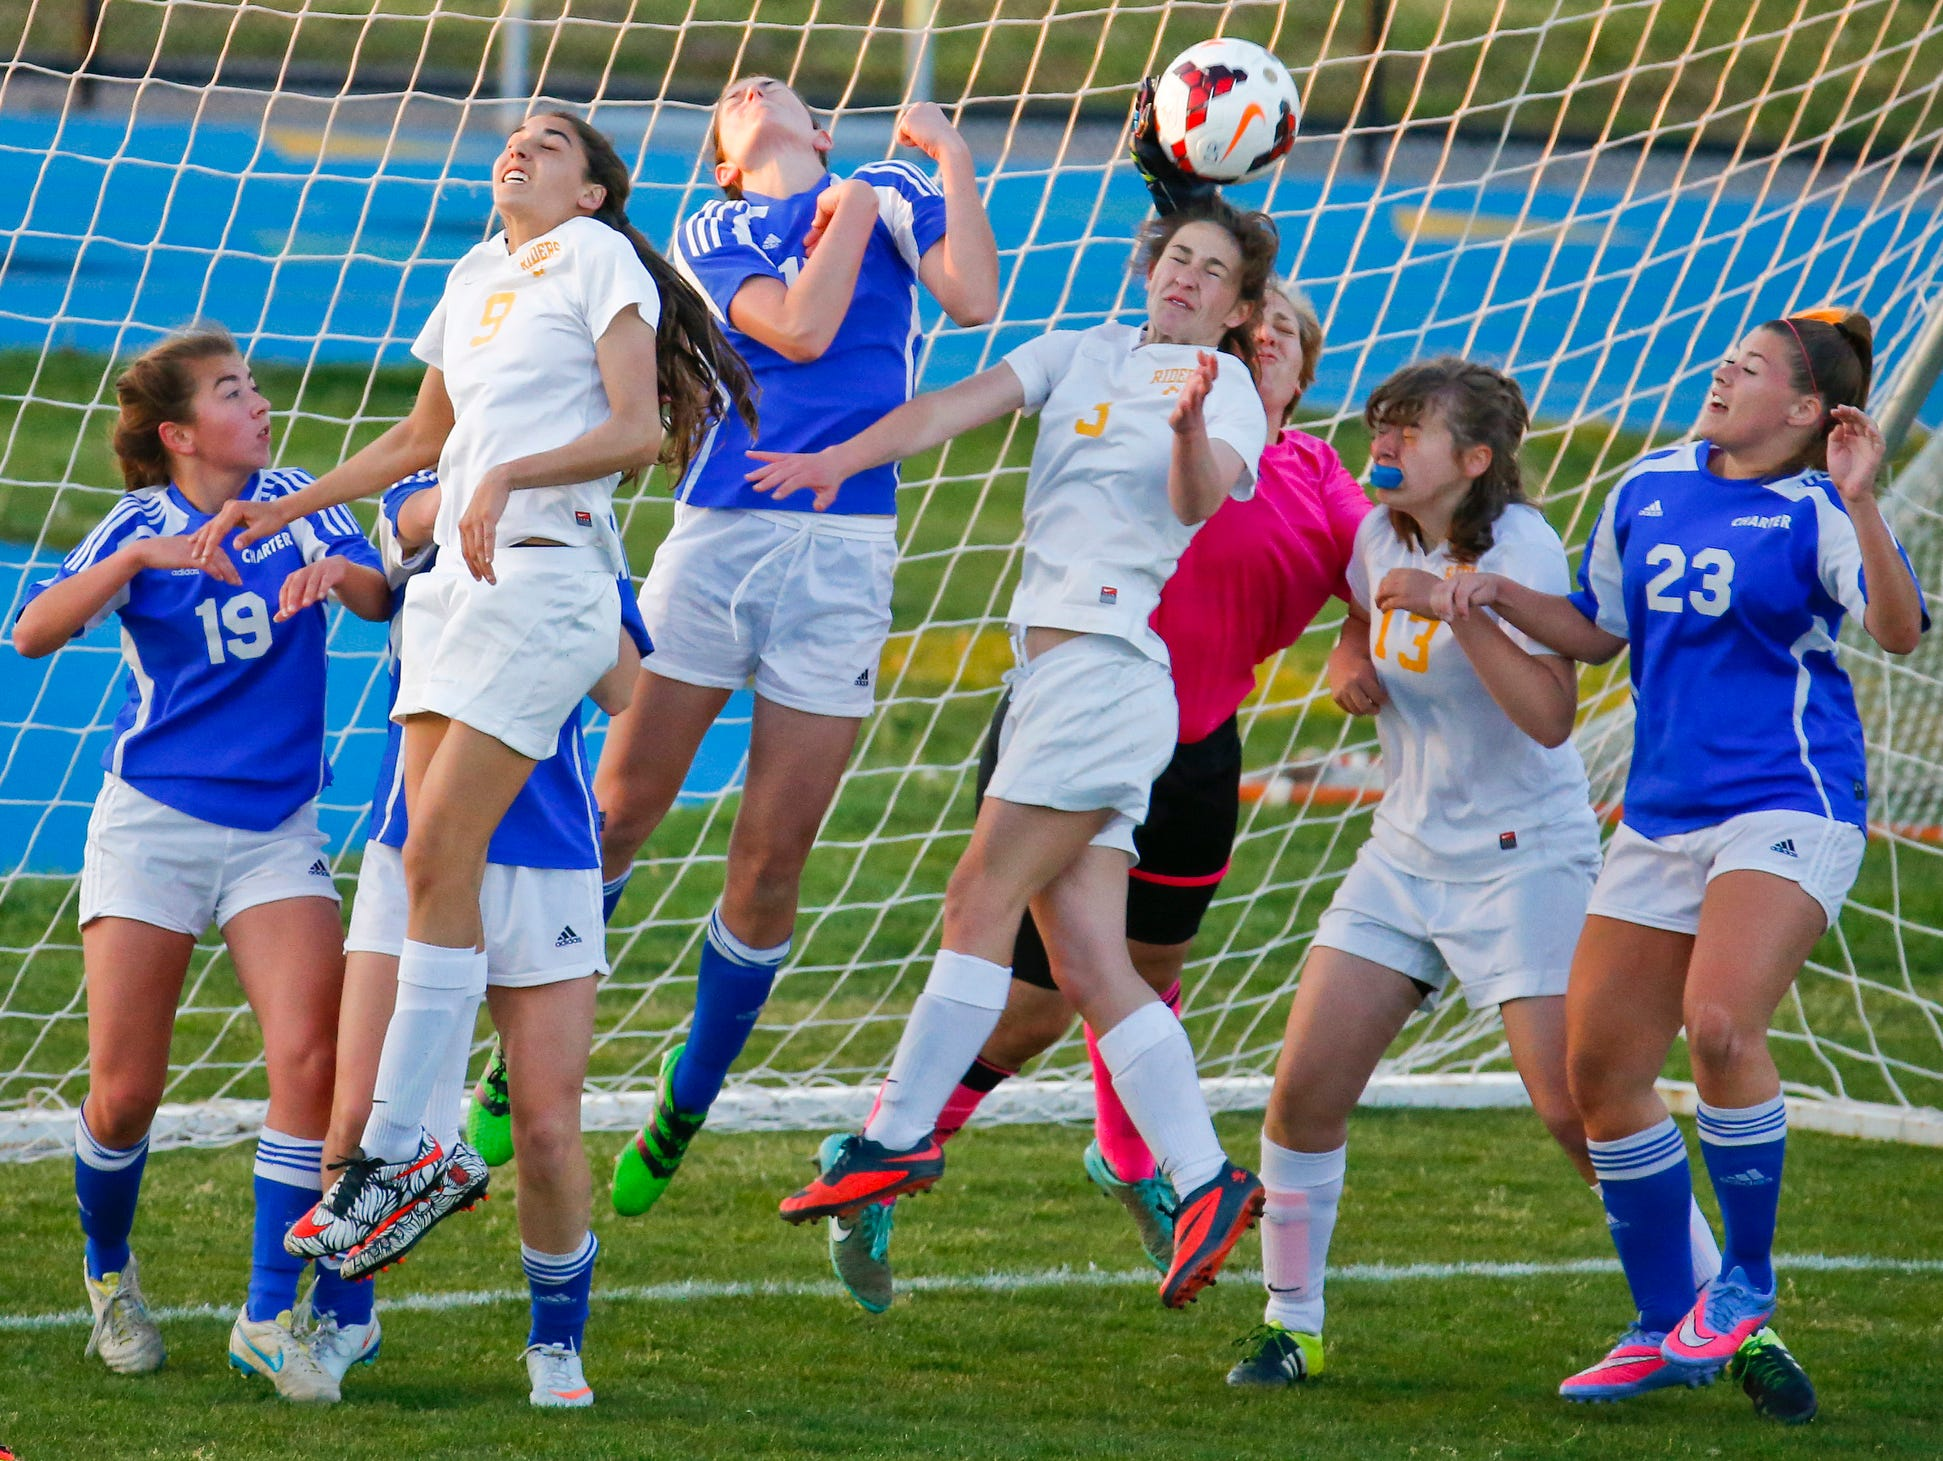 Caesar Rodney's Jessie Prillaman (9), Aleya Cummings (center) and Megan Powers (13) move for a corner kick against Charter in the second half of the Riders' 2-1 win at Caesar Rodney High School Friday. Cummings provided both goals for the Riders.